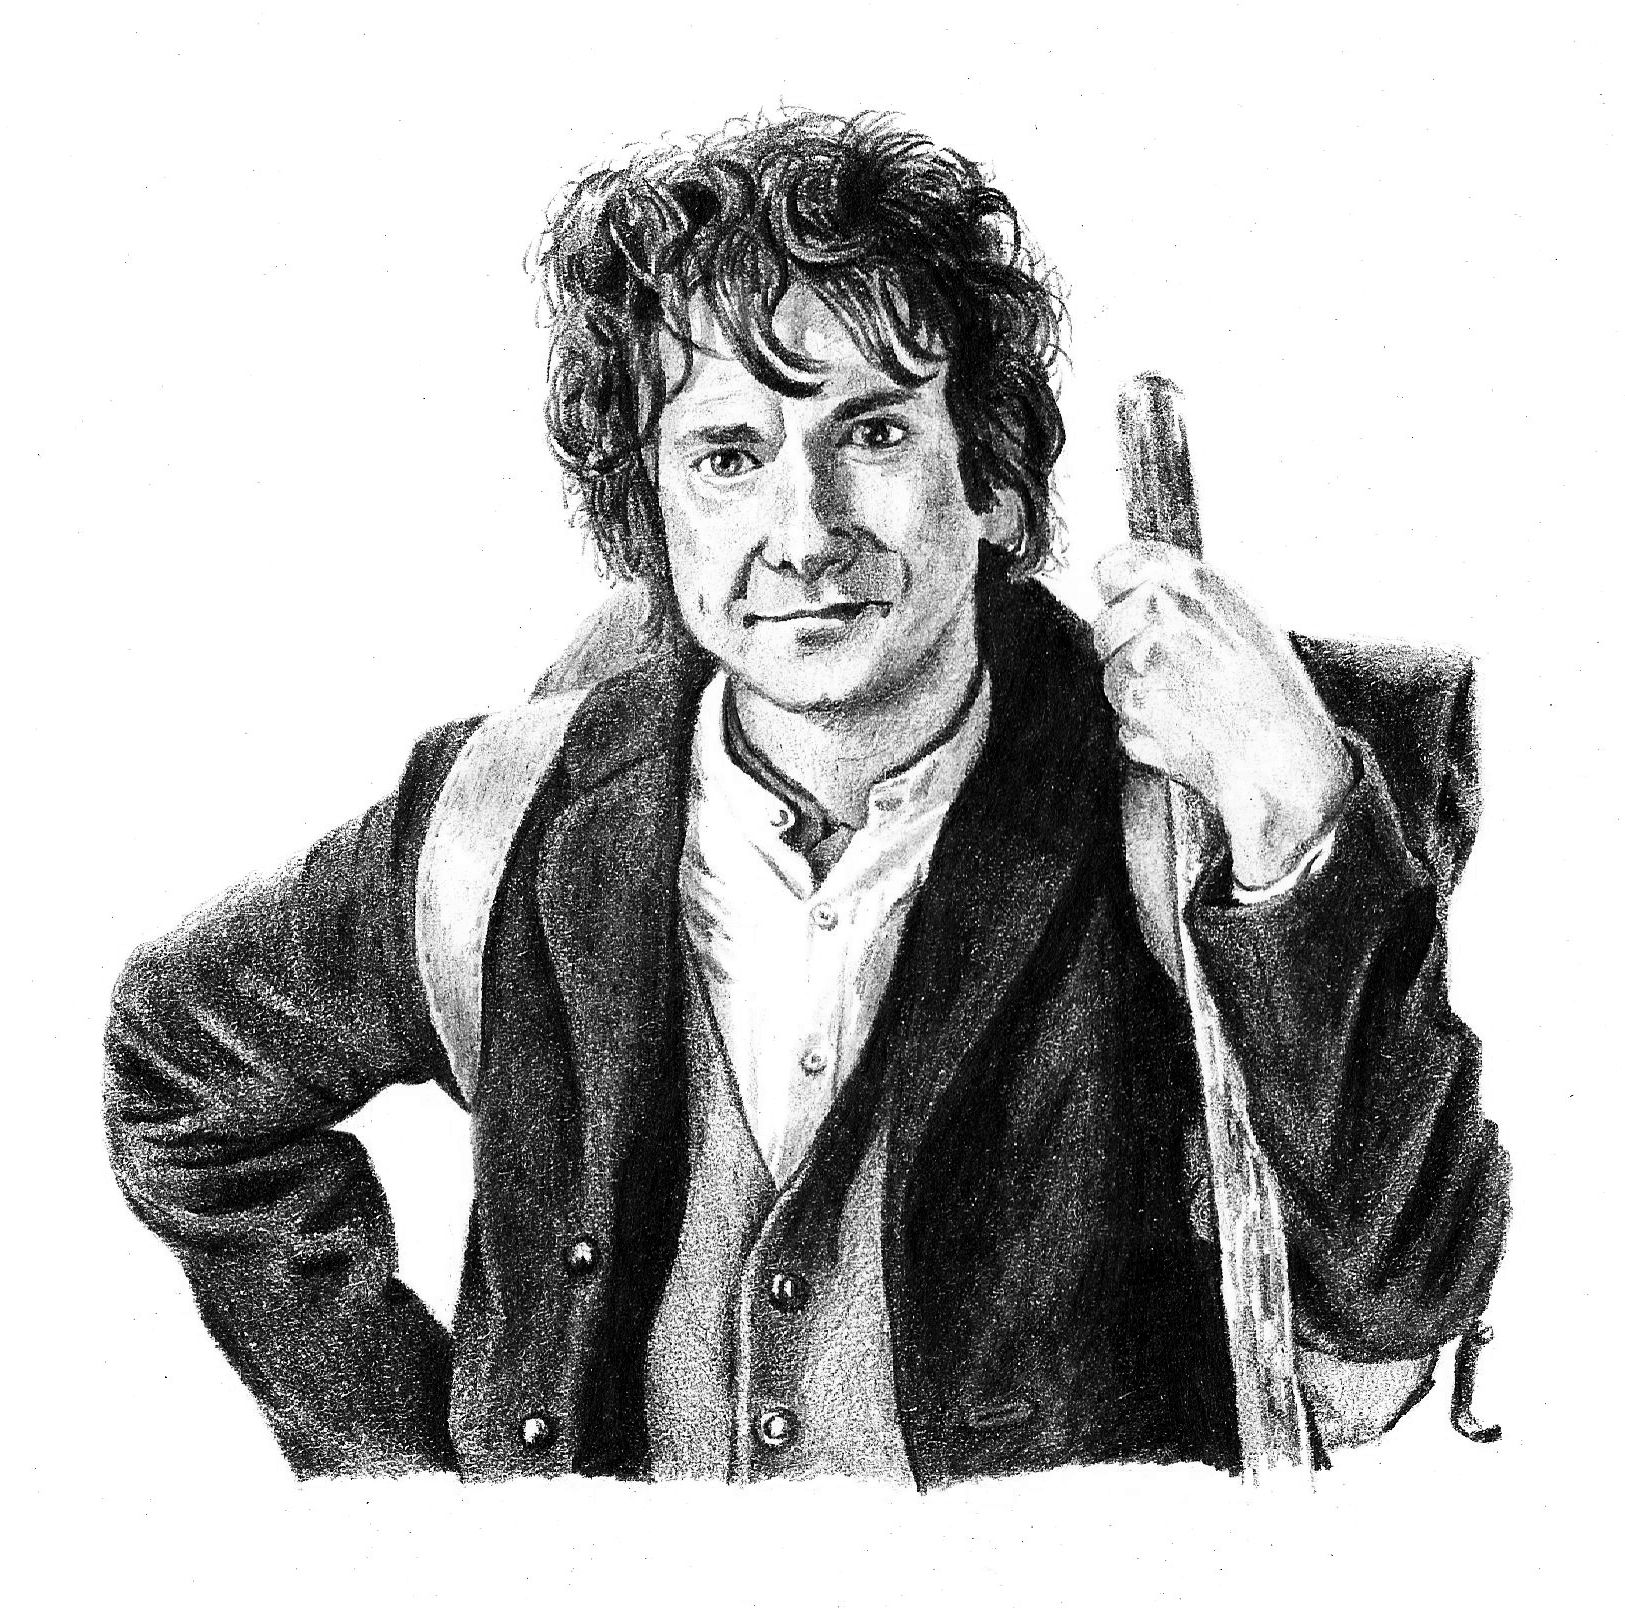 how to draw the hobbit characters lotr drawing in pencil google search color me pretty the how draw hobbit to characters